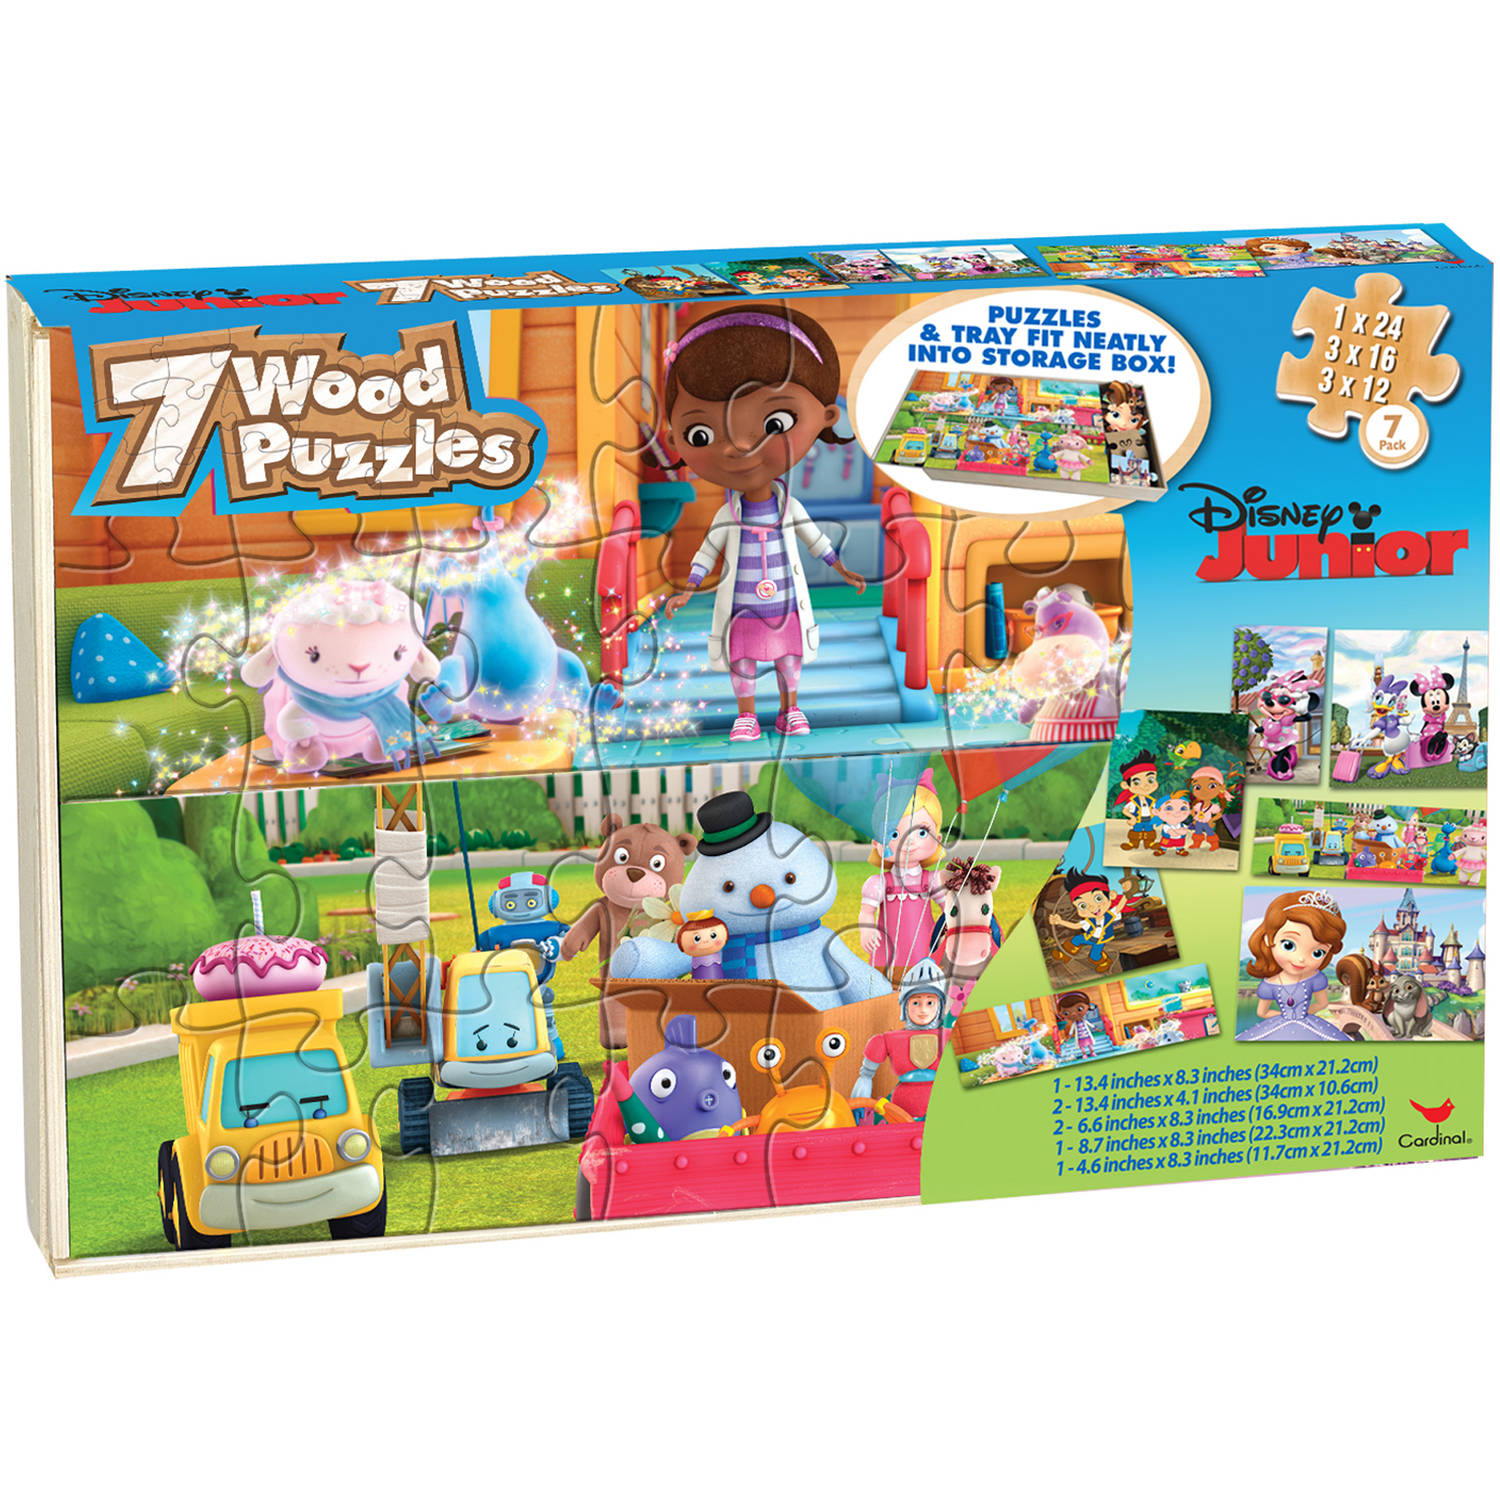 Disney Junior 7 Wood Jigsaw Puzzles in Wood Storage Box by Cardinal Games